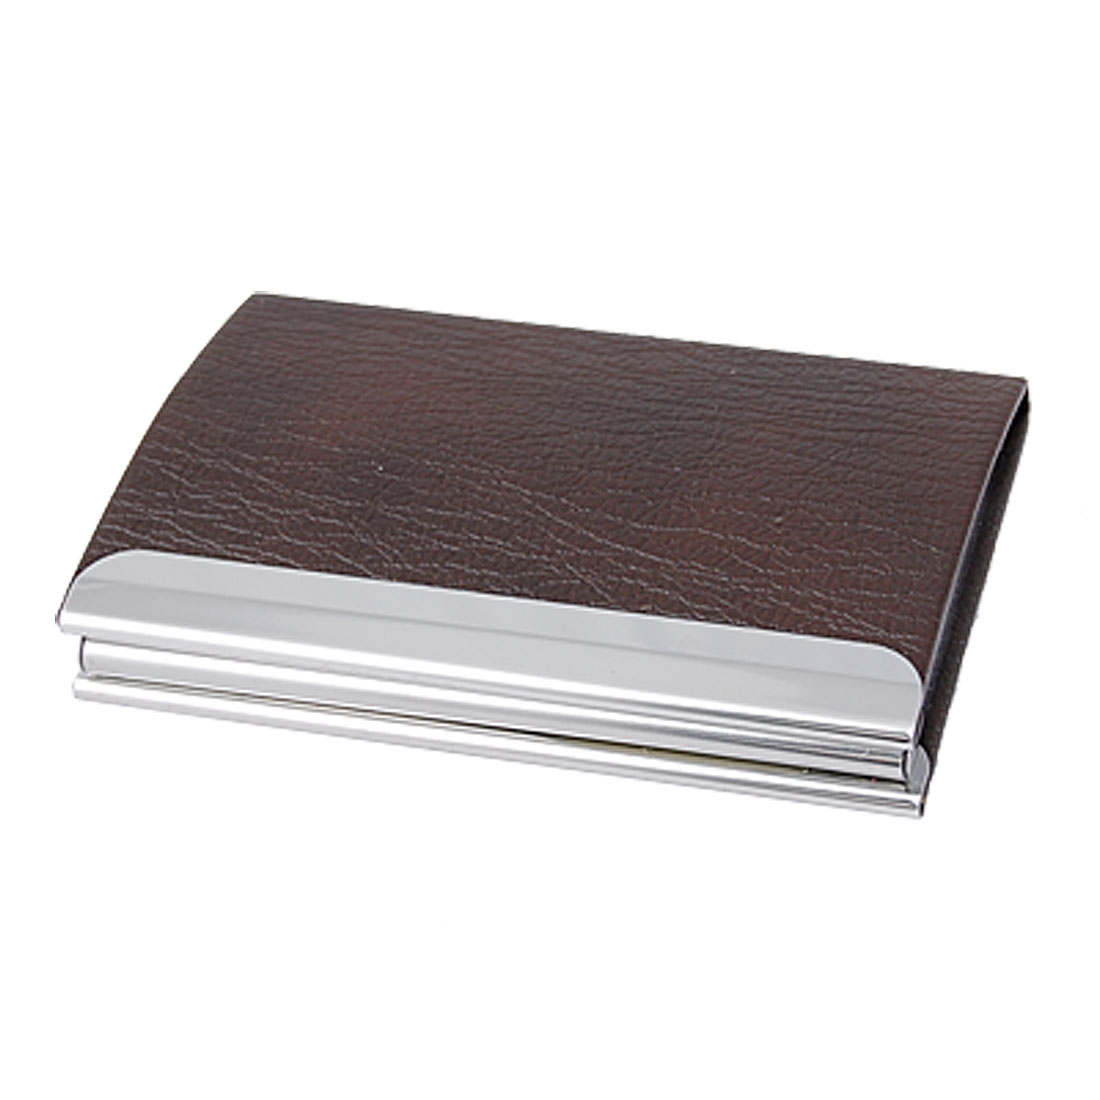 Textured Chocolate Silver Tone Magnetic Card Case Holder